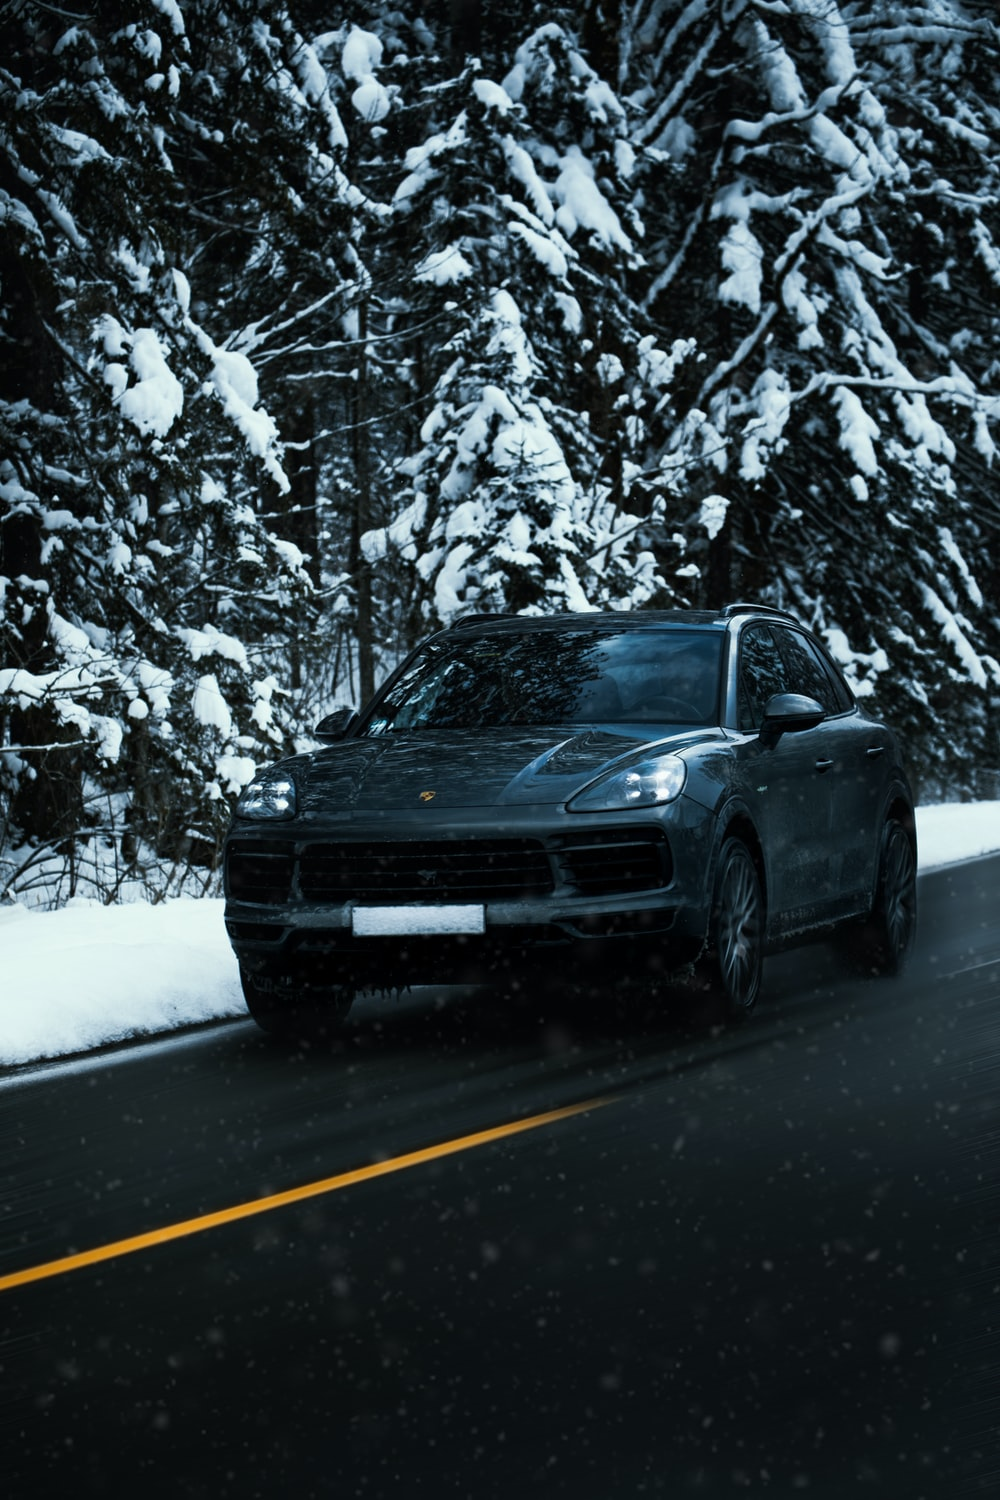 black car on road during winter